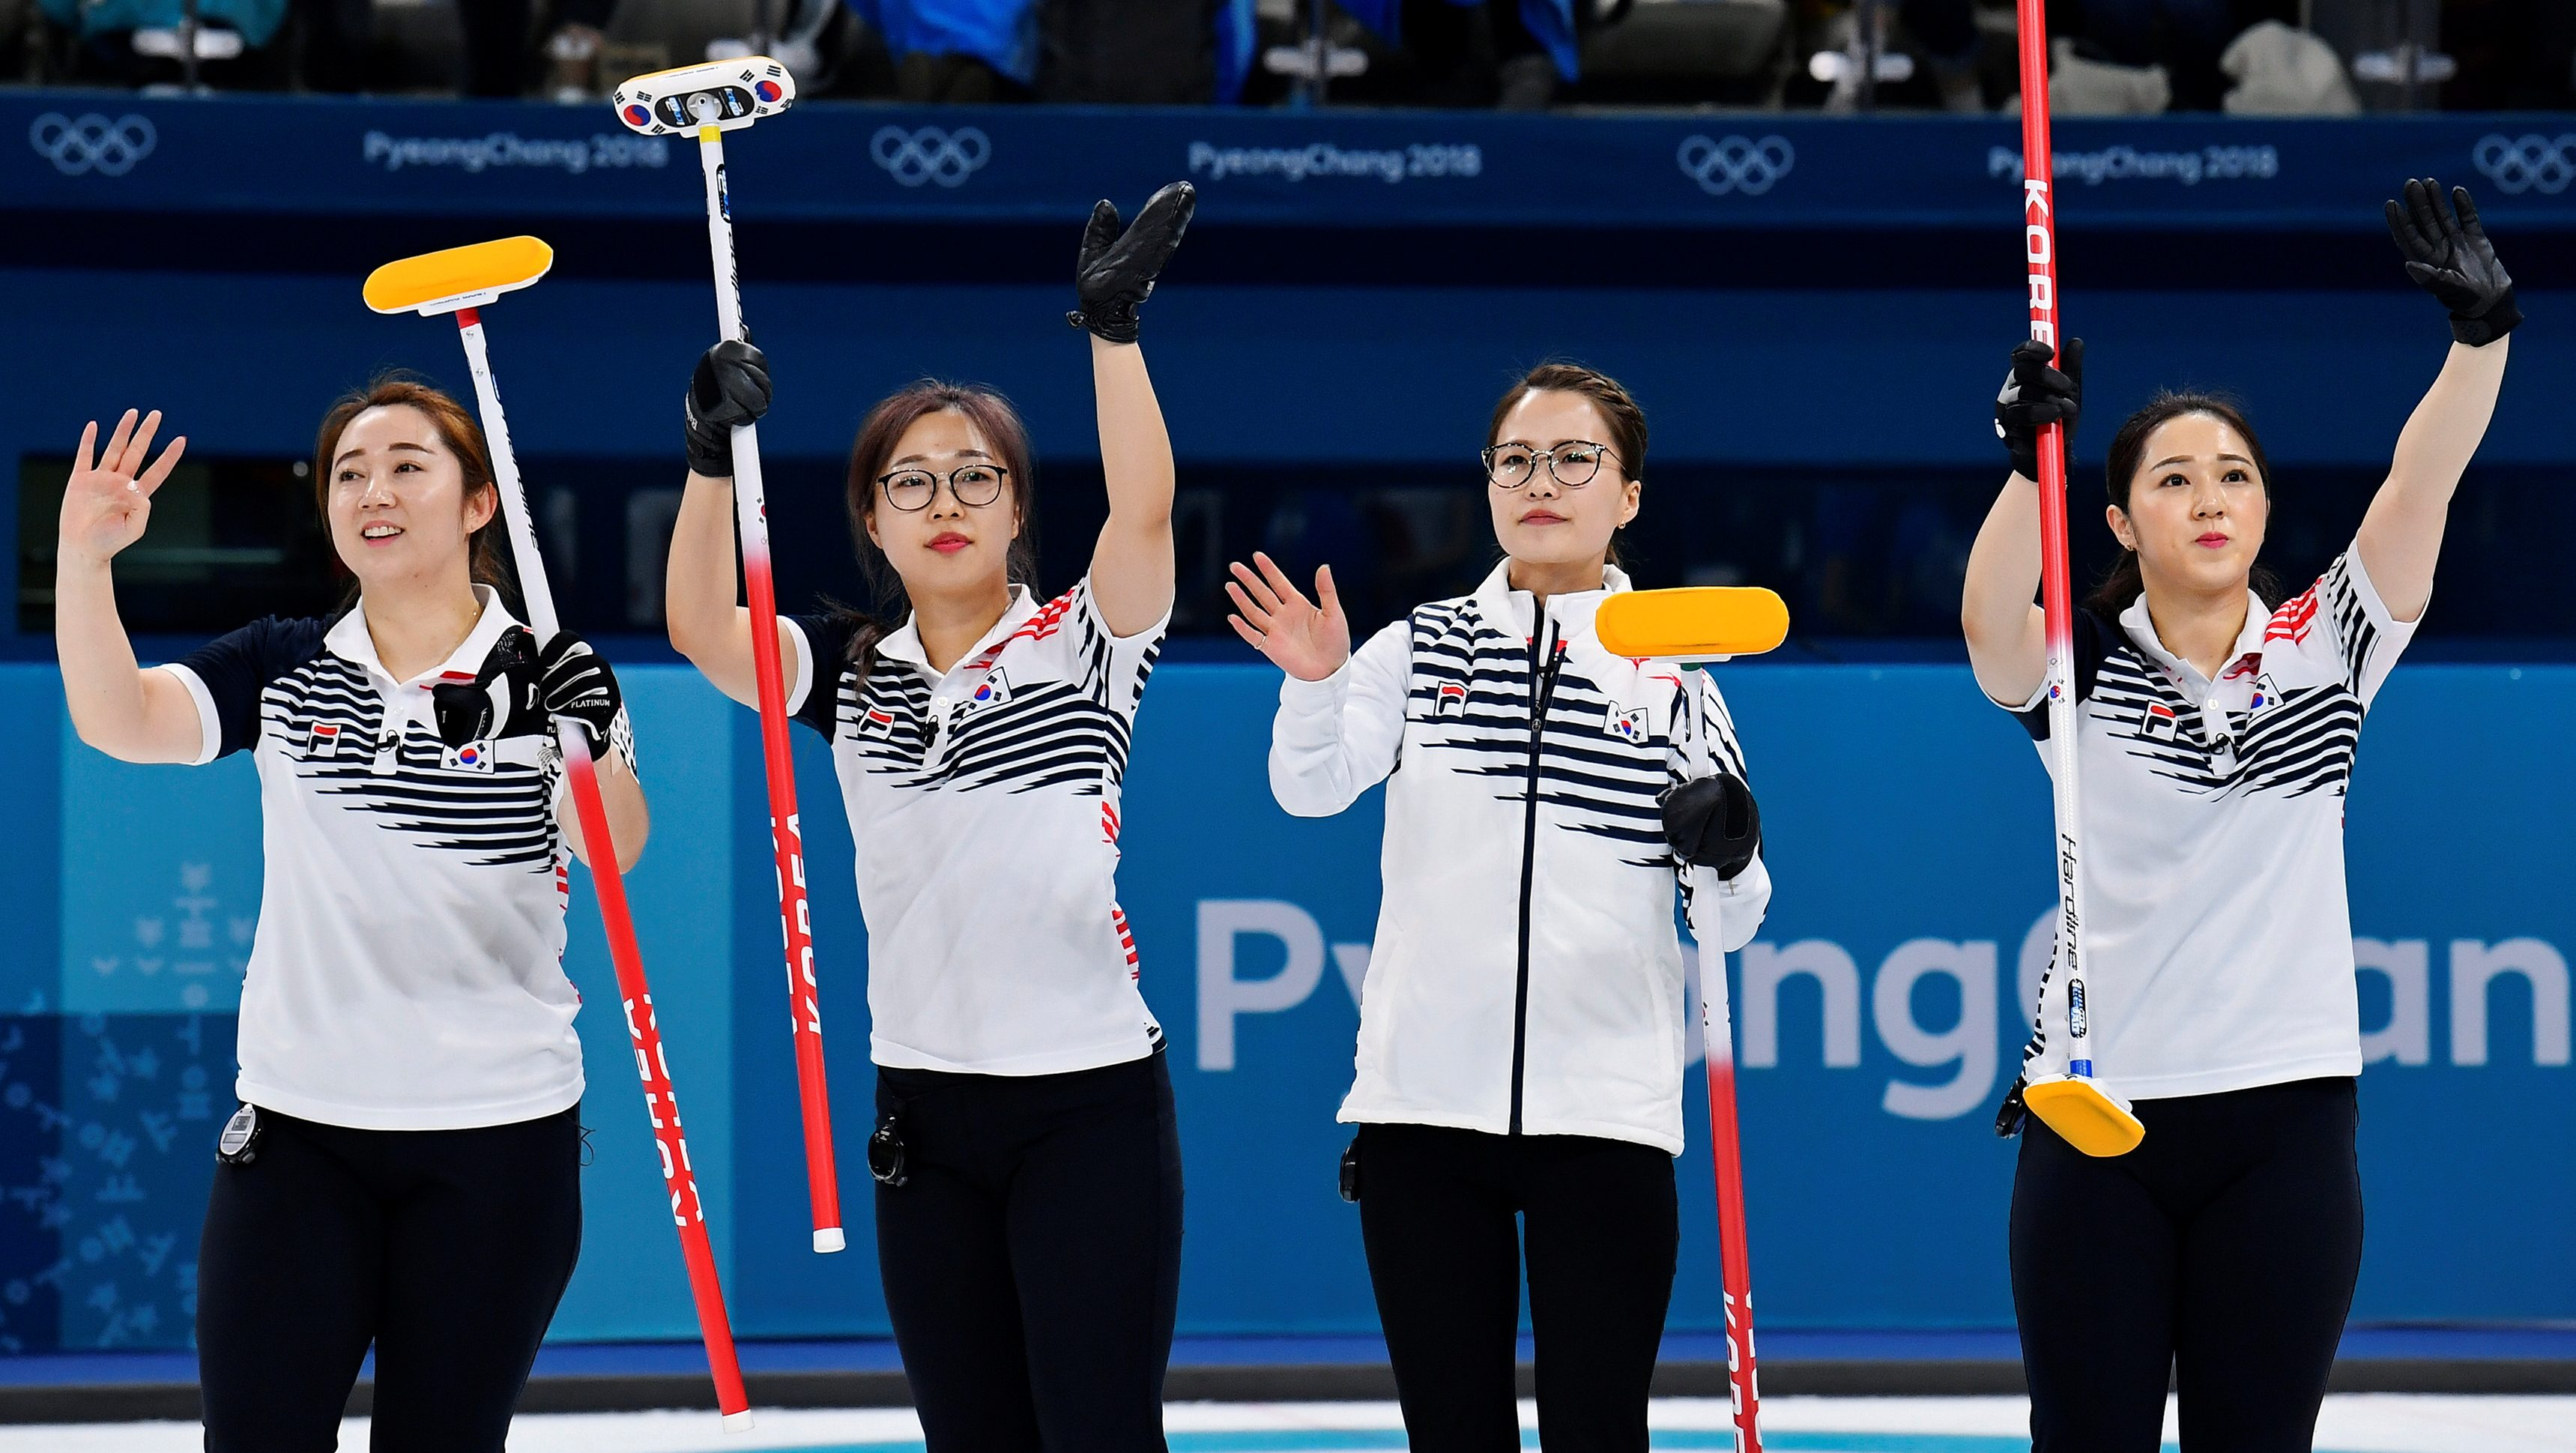 Curling - Pyeongchang 2018 Winter Olympics - Women's Round Robin - Sweden v South Korea - Gangneung Curling Center - Gangneung, South Korea - February 19, 2018 - Kim Eun-jung, Kim Kyeong-ae, Kim Seon-yeong and Kim Yeong-mi of South Korea celebrate beating Sweden. REUTERS/Toby Melville